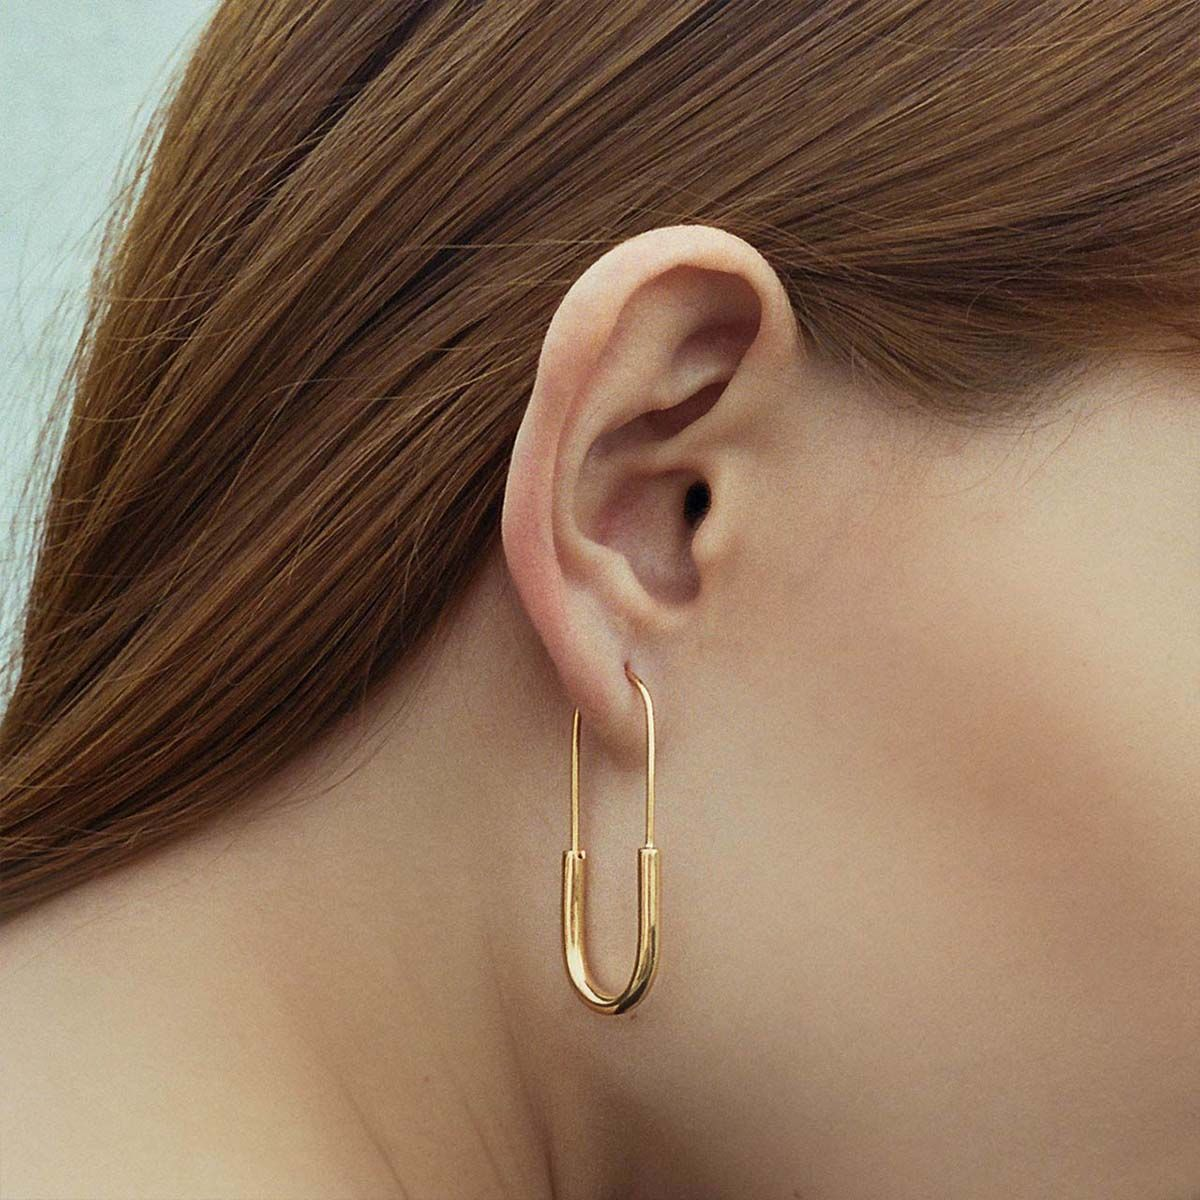 Chance - Piercing - Gold